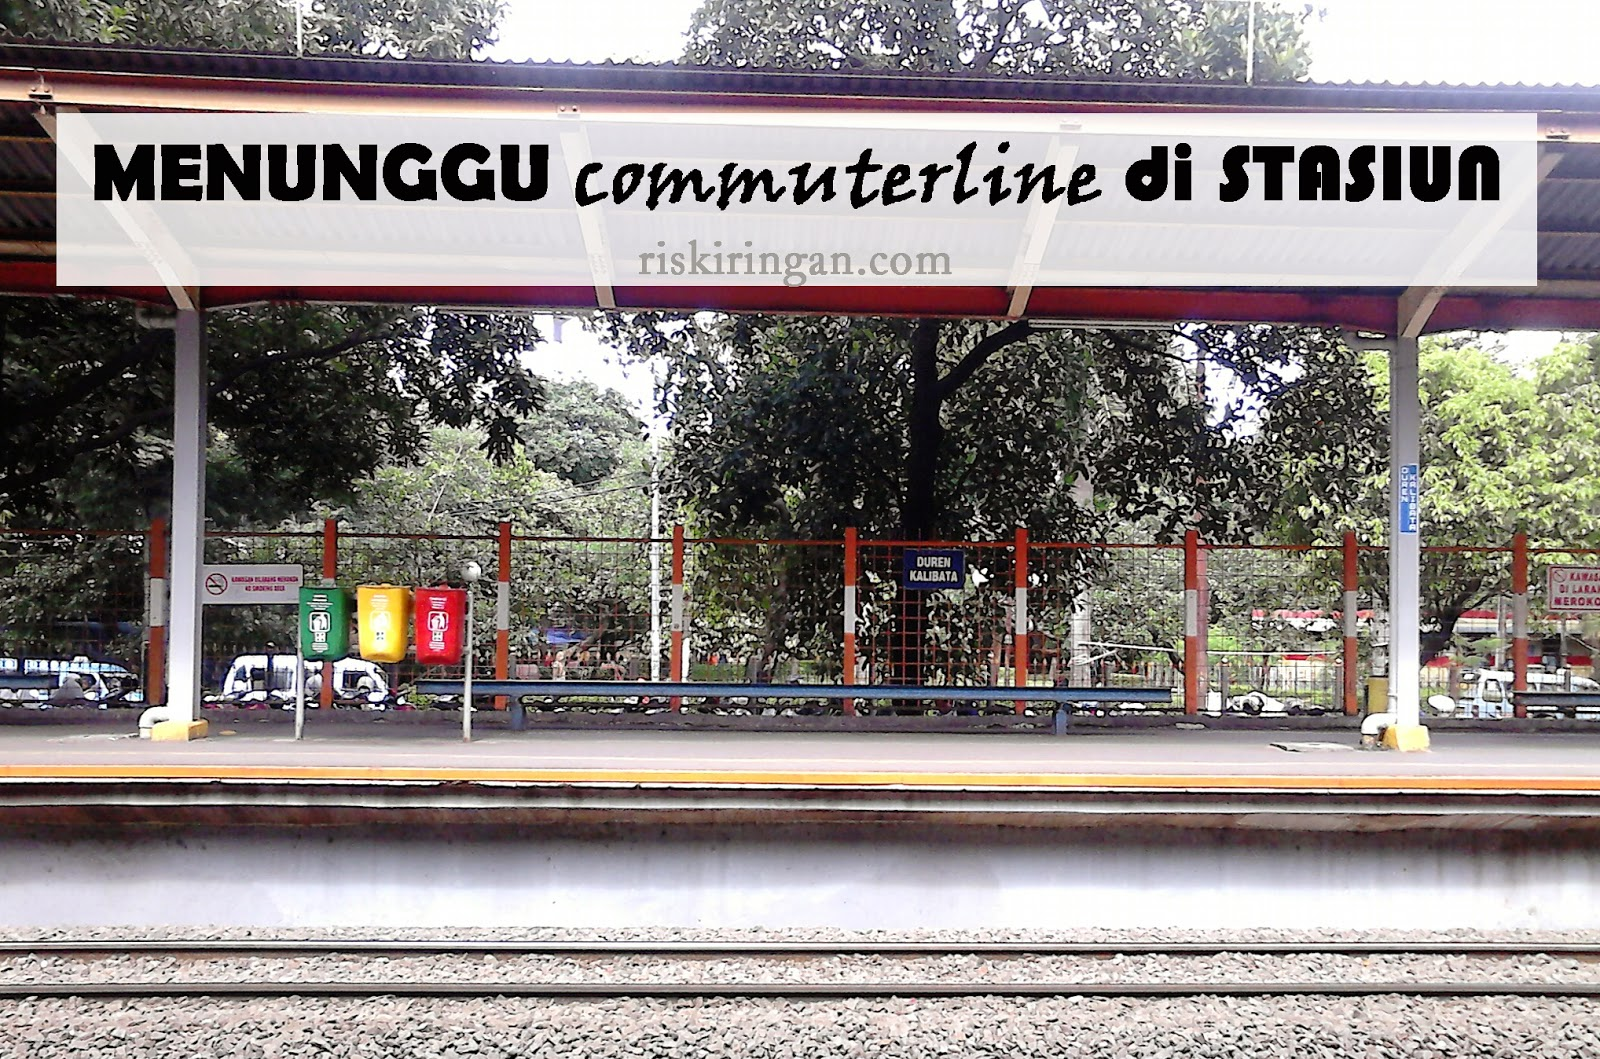 menunggu commuterline